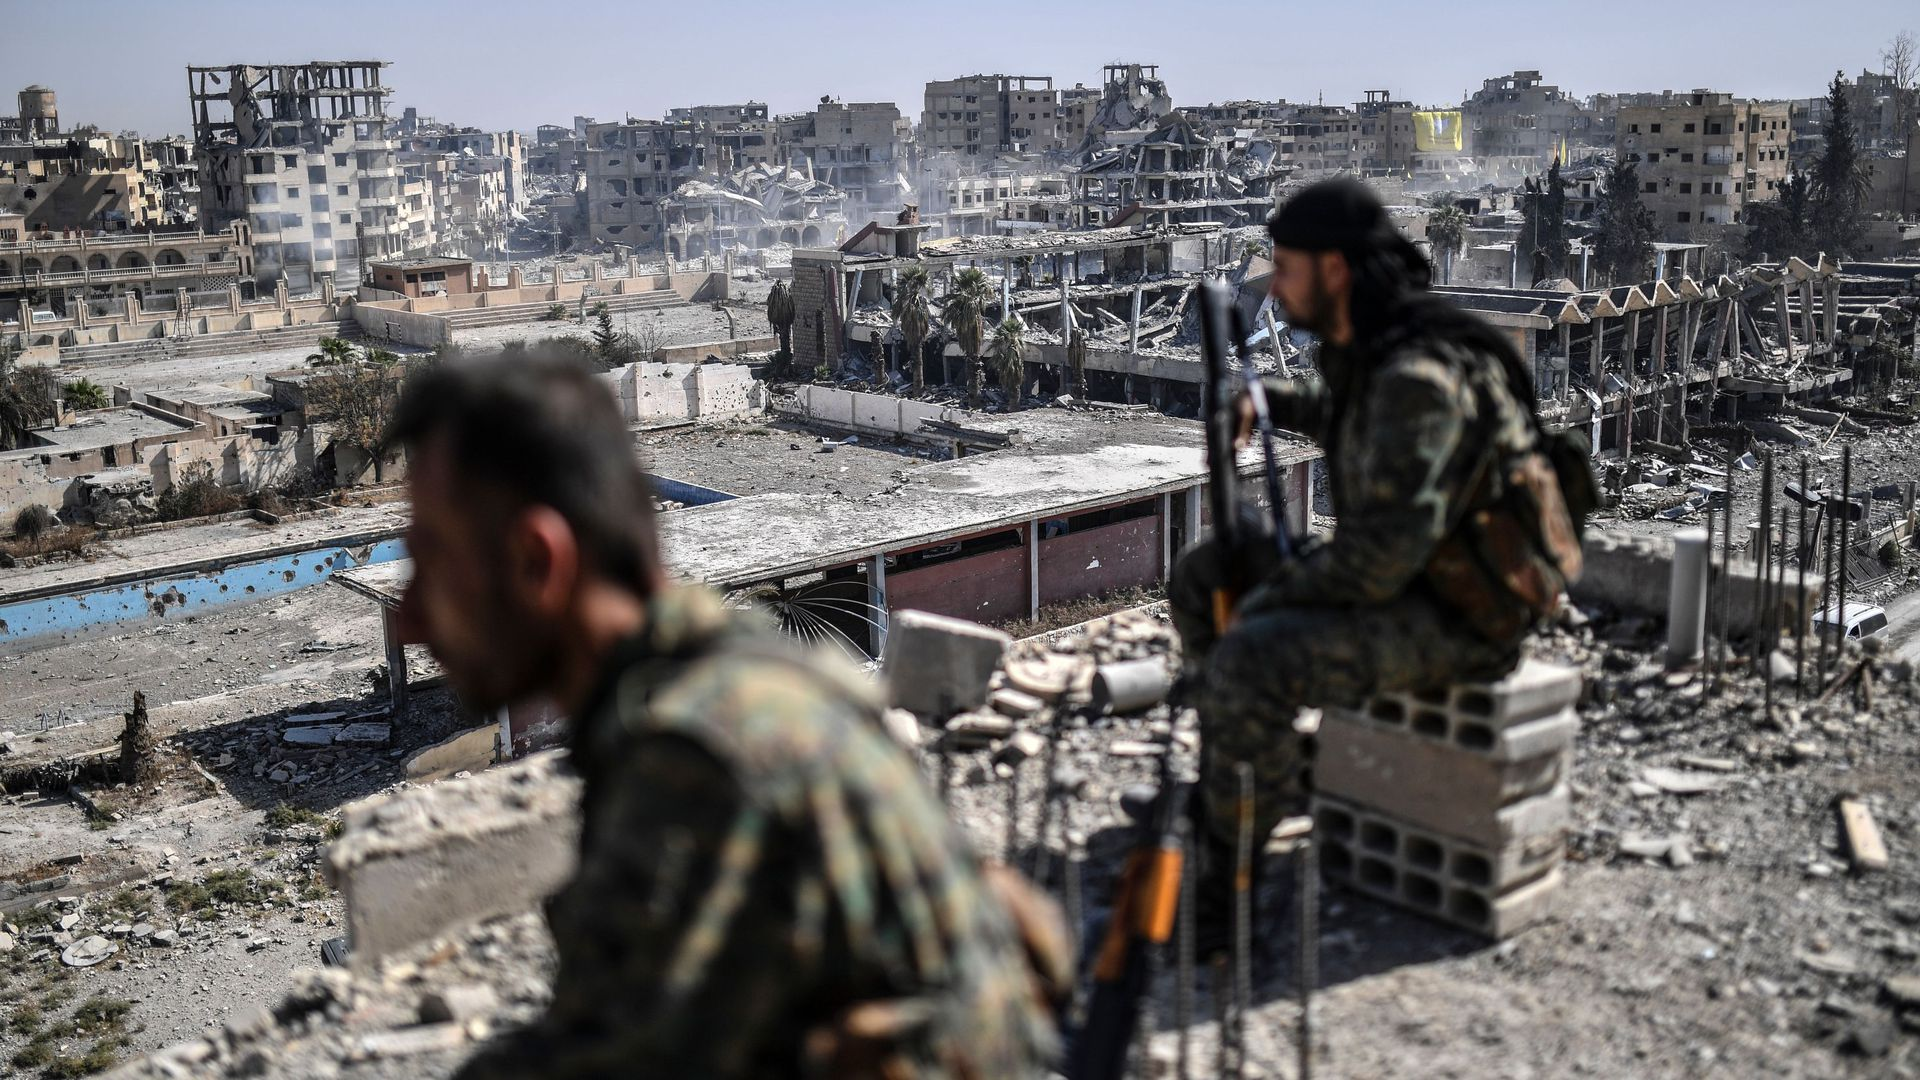 Fighters of the Syrian Democratic Forces (SDF) stand guard on a rooftop in Raqqa.